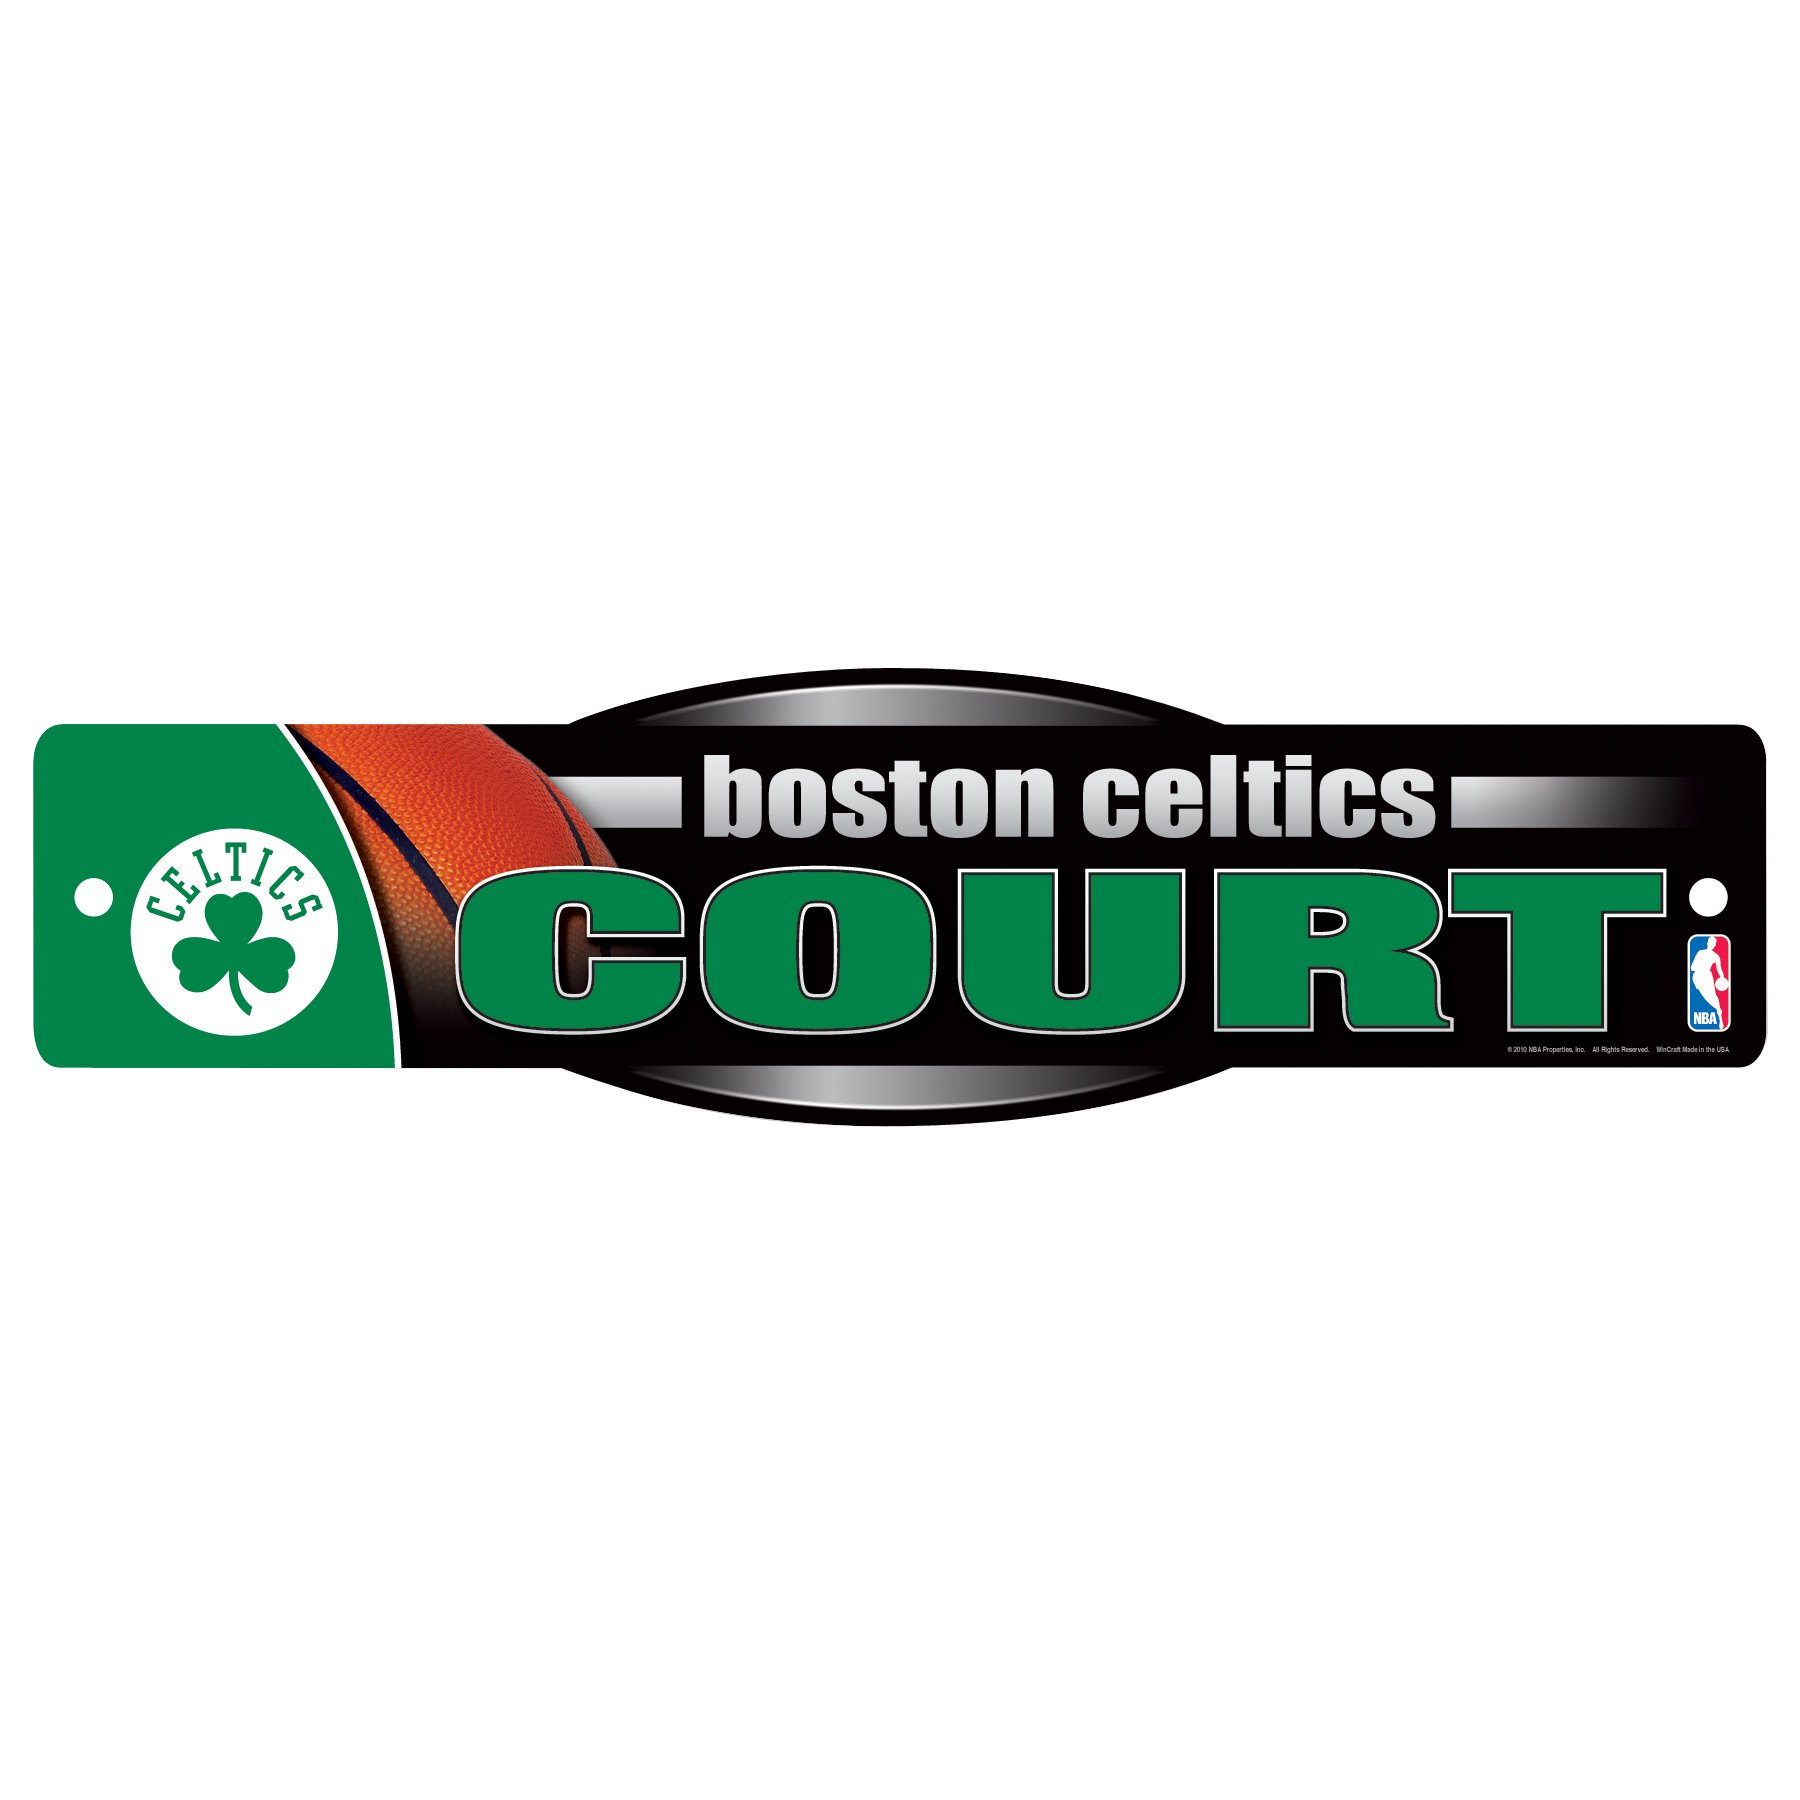 NBA Boston Celtics Sign, 4.5 x 17-Inch